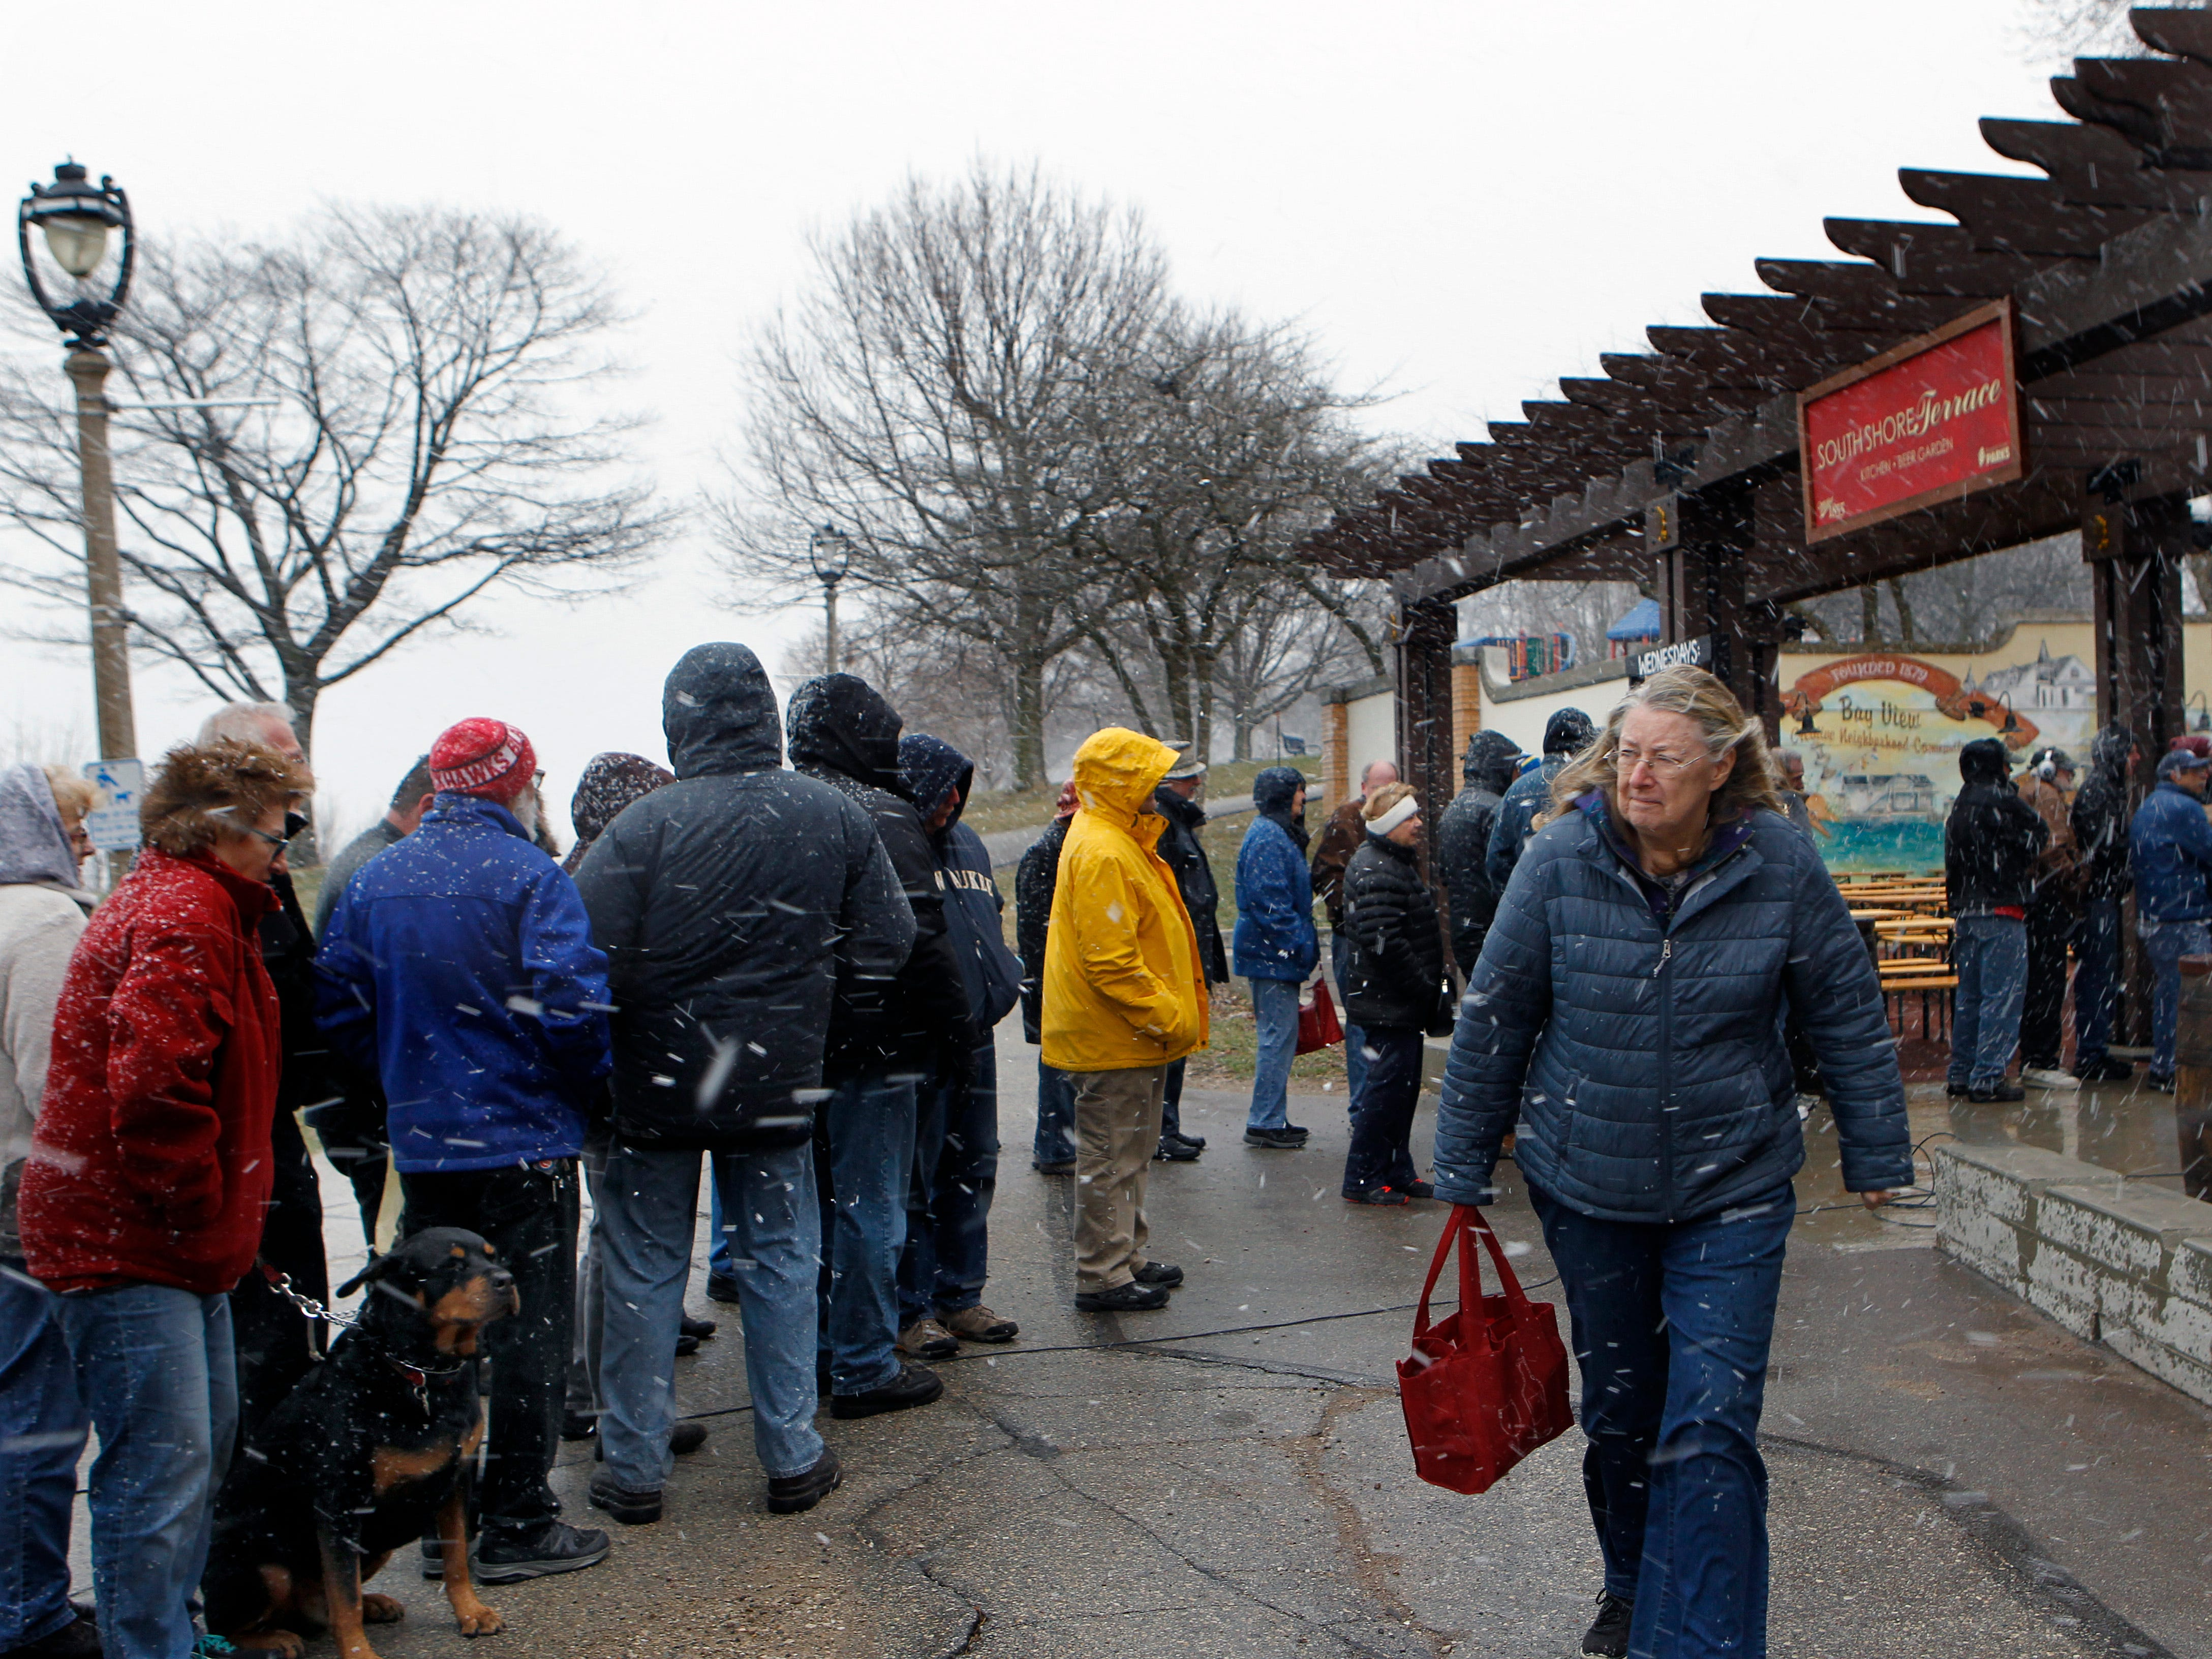 A crowd including lined up at the kick off of the beer garden season at South Shore Terrace on Wednesday, April 10, 2019.   Several hundred turned out for the event that featured free beer and food.